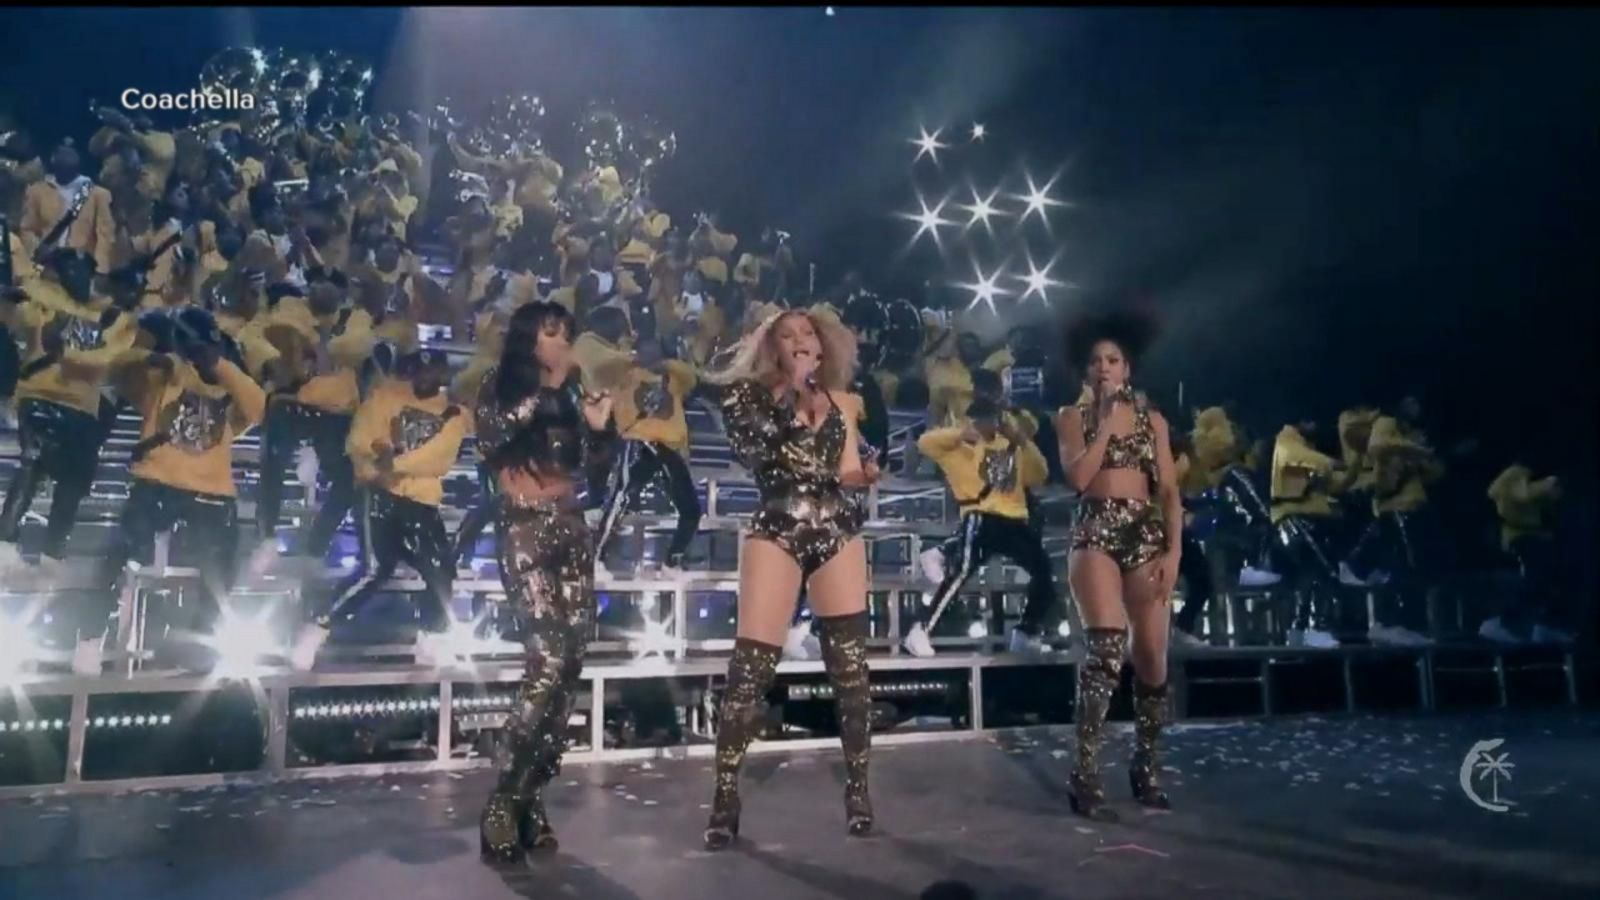 Beyonce at Coachella: All of the hidden meanings explained